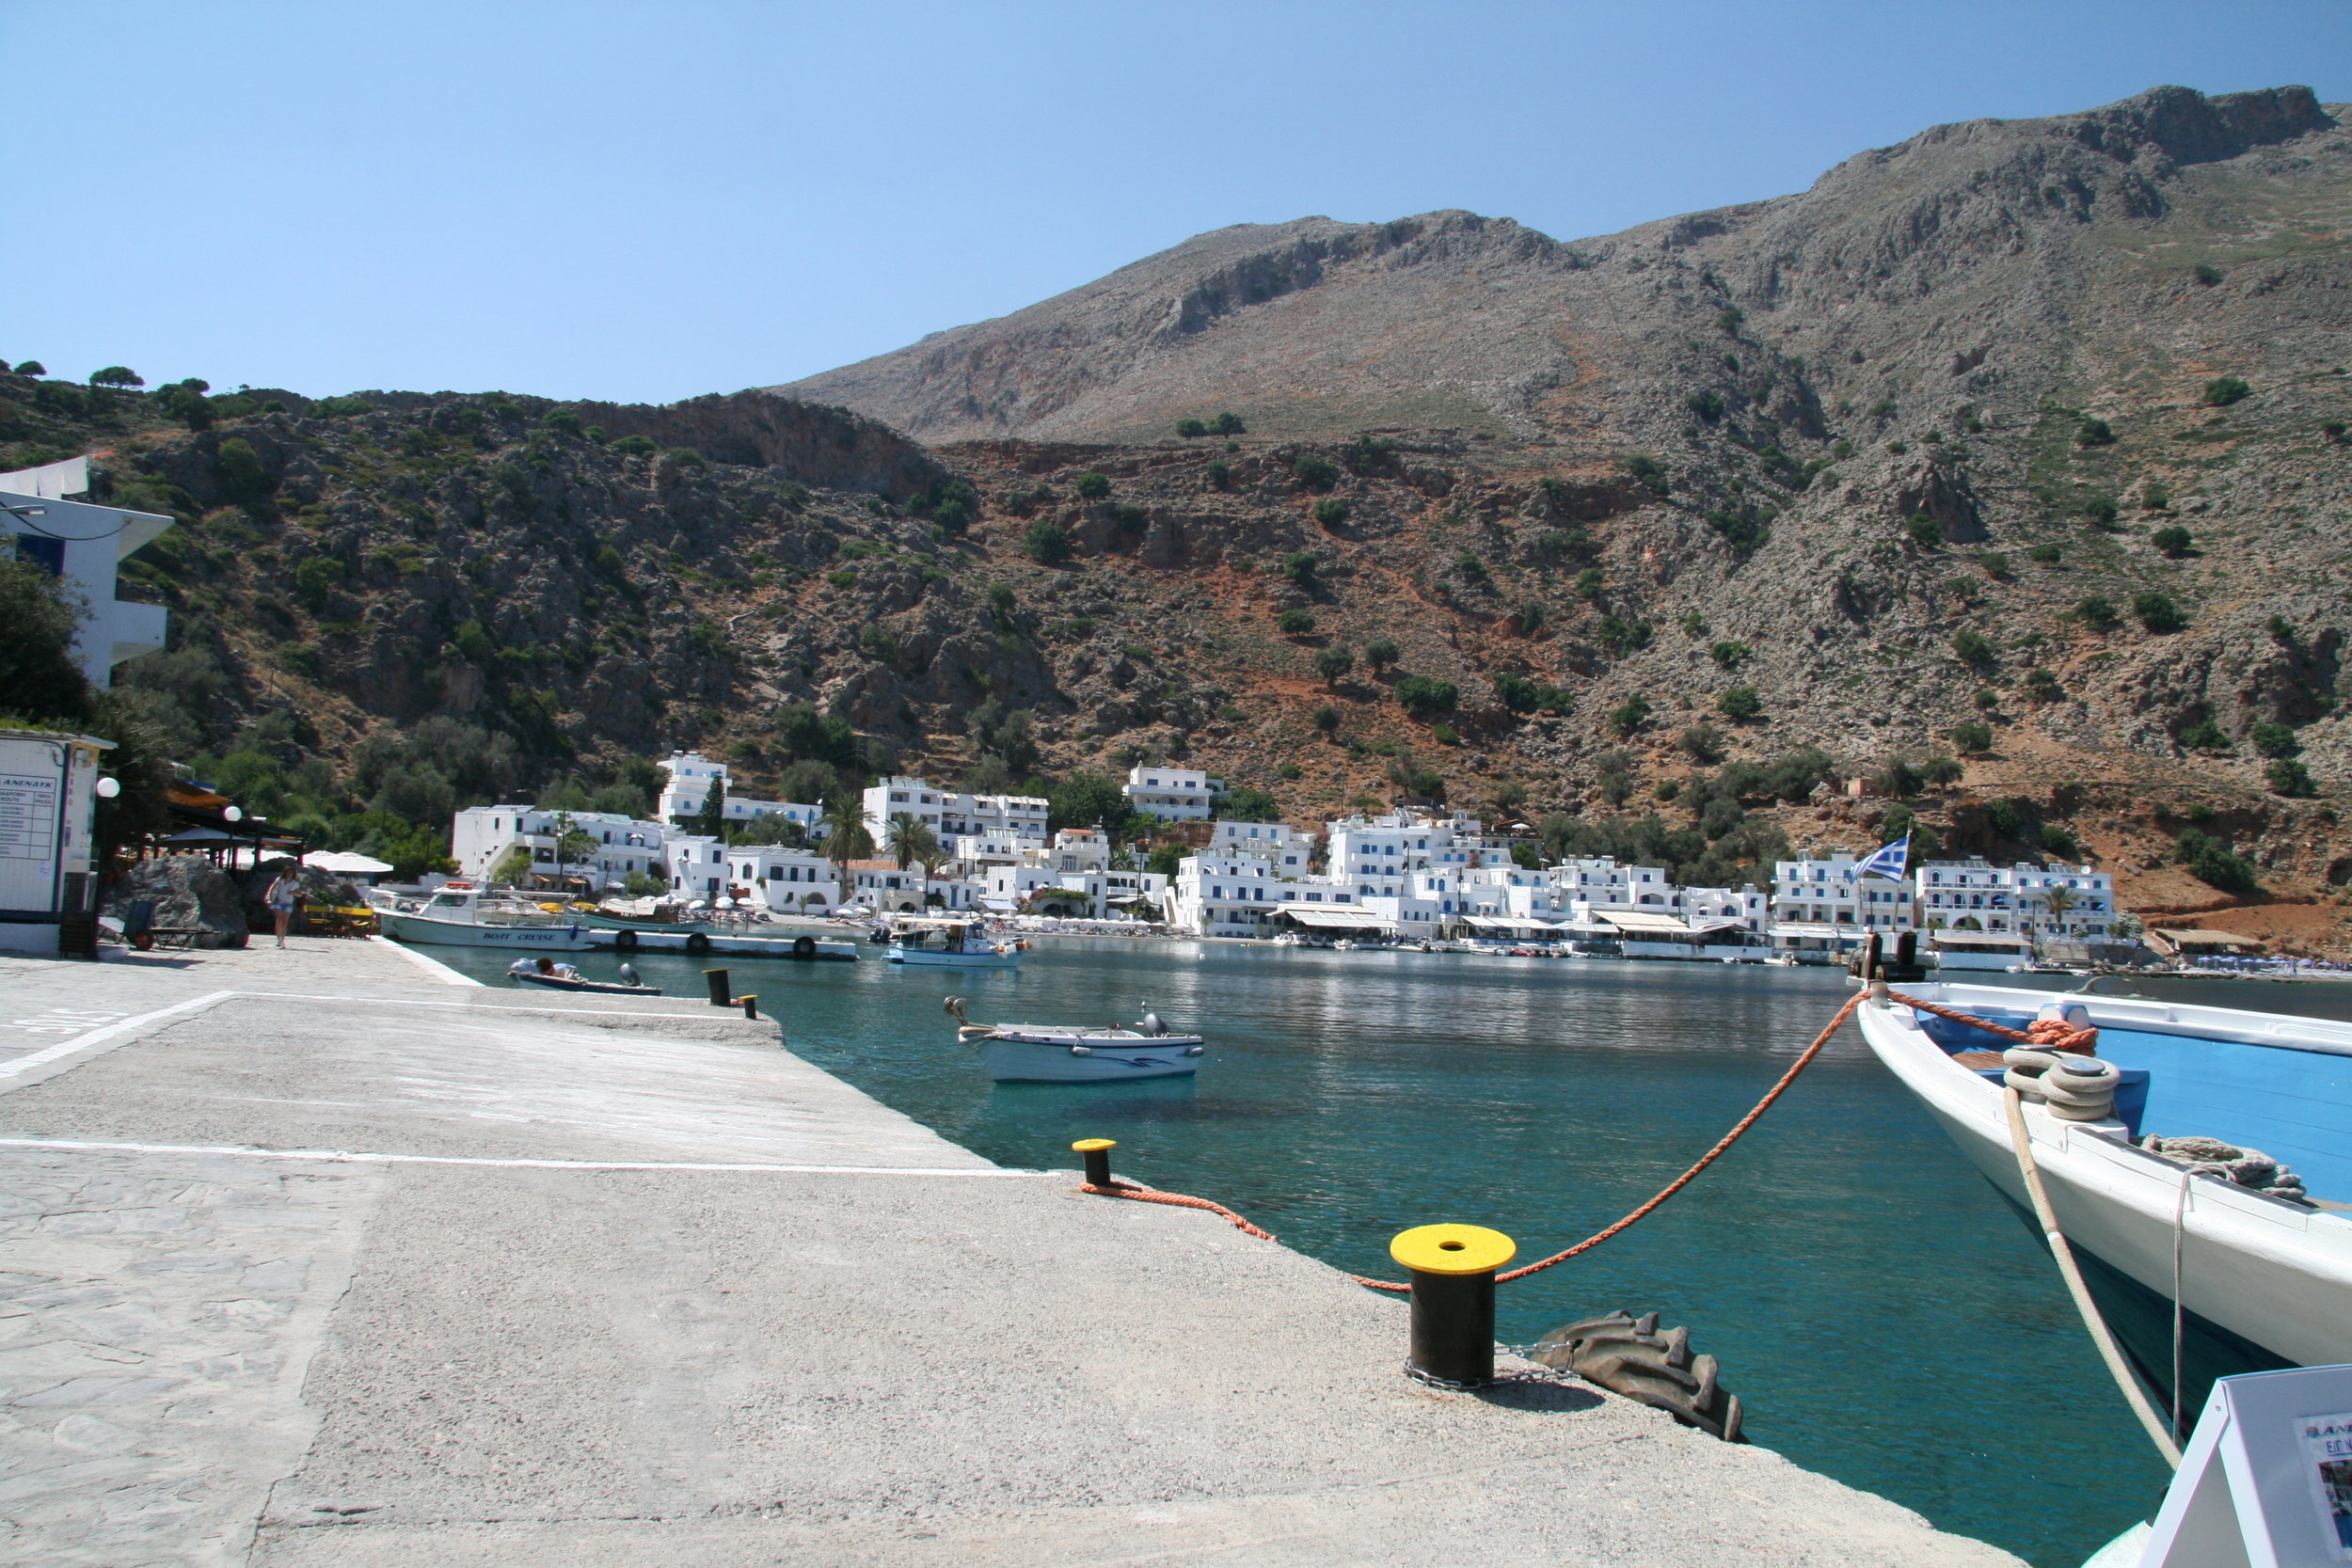 Loutro when arriving by boat